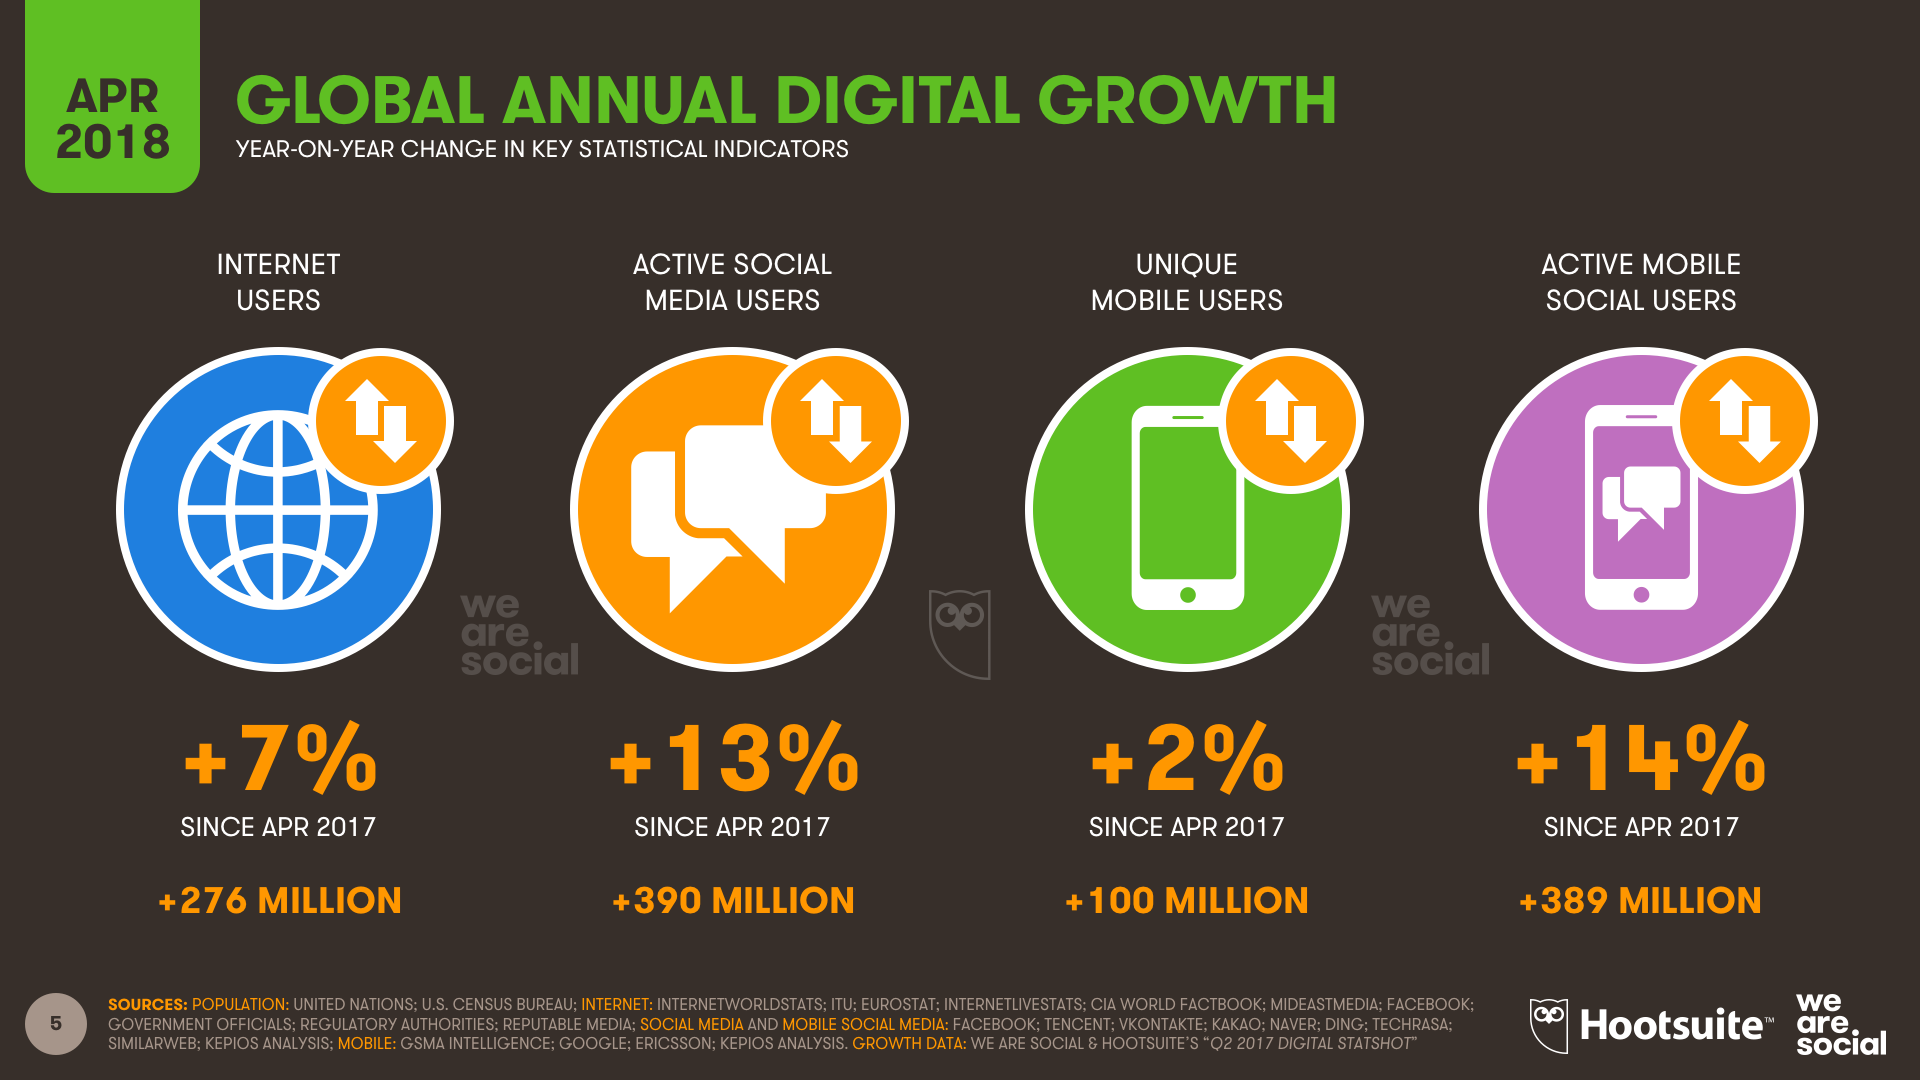 Annual Digital Growth to April 2018